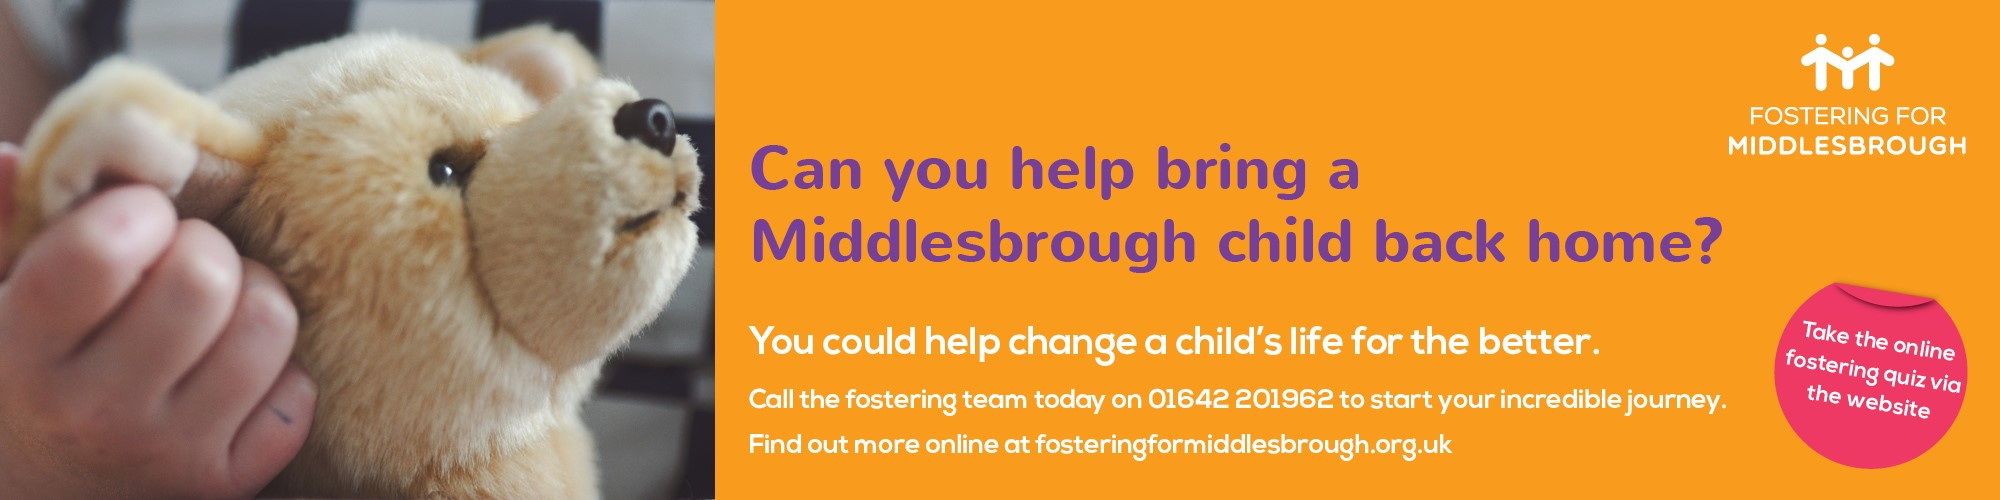 Fostering for Middlesbrough banner